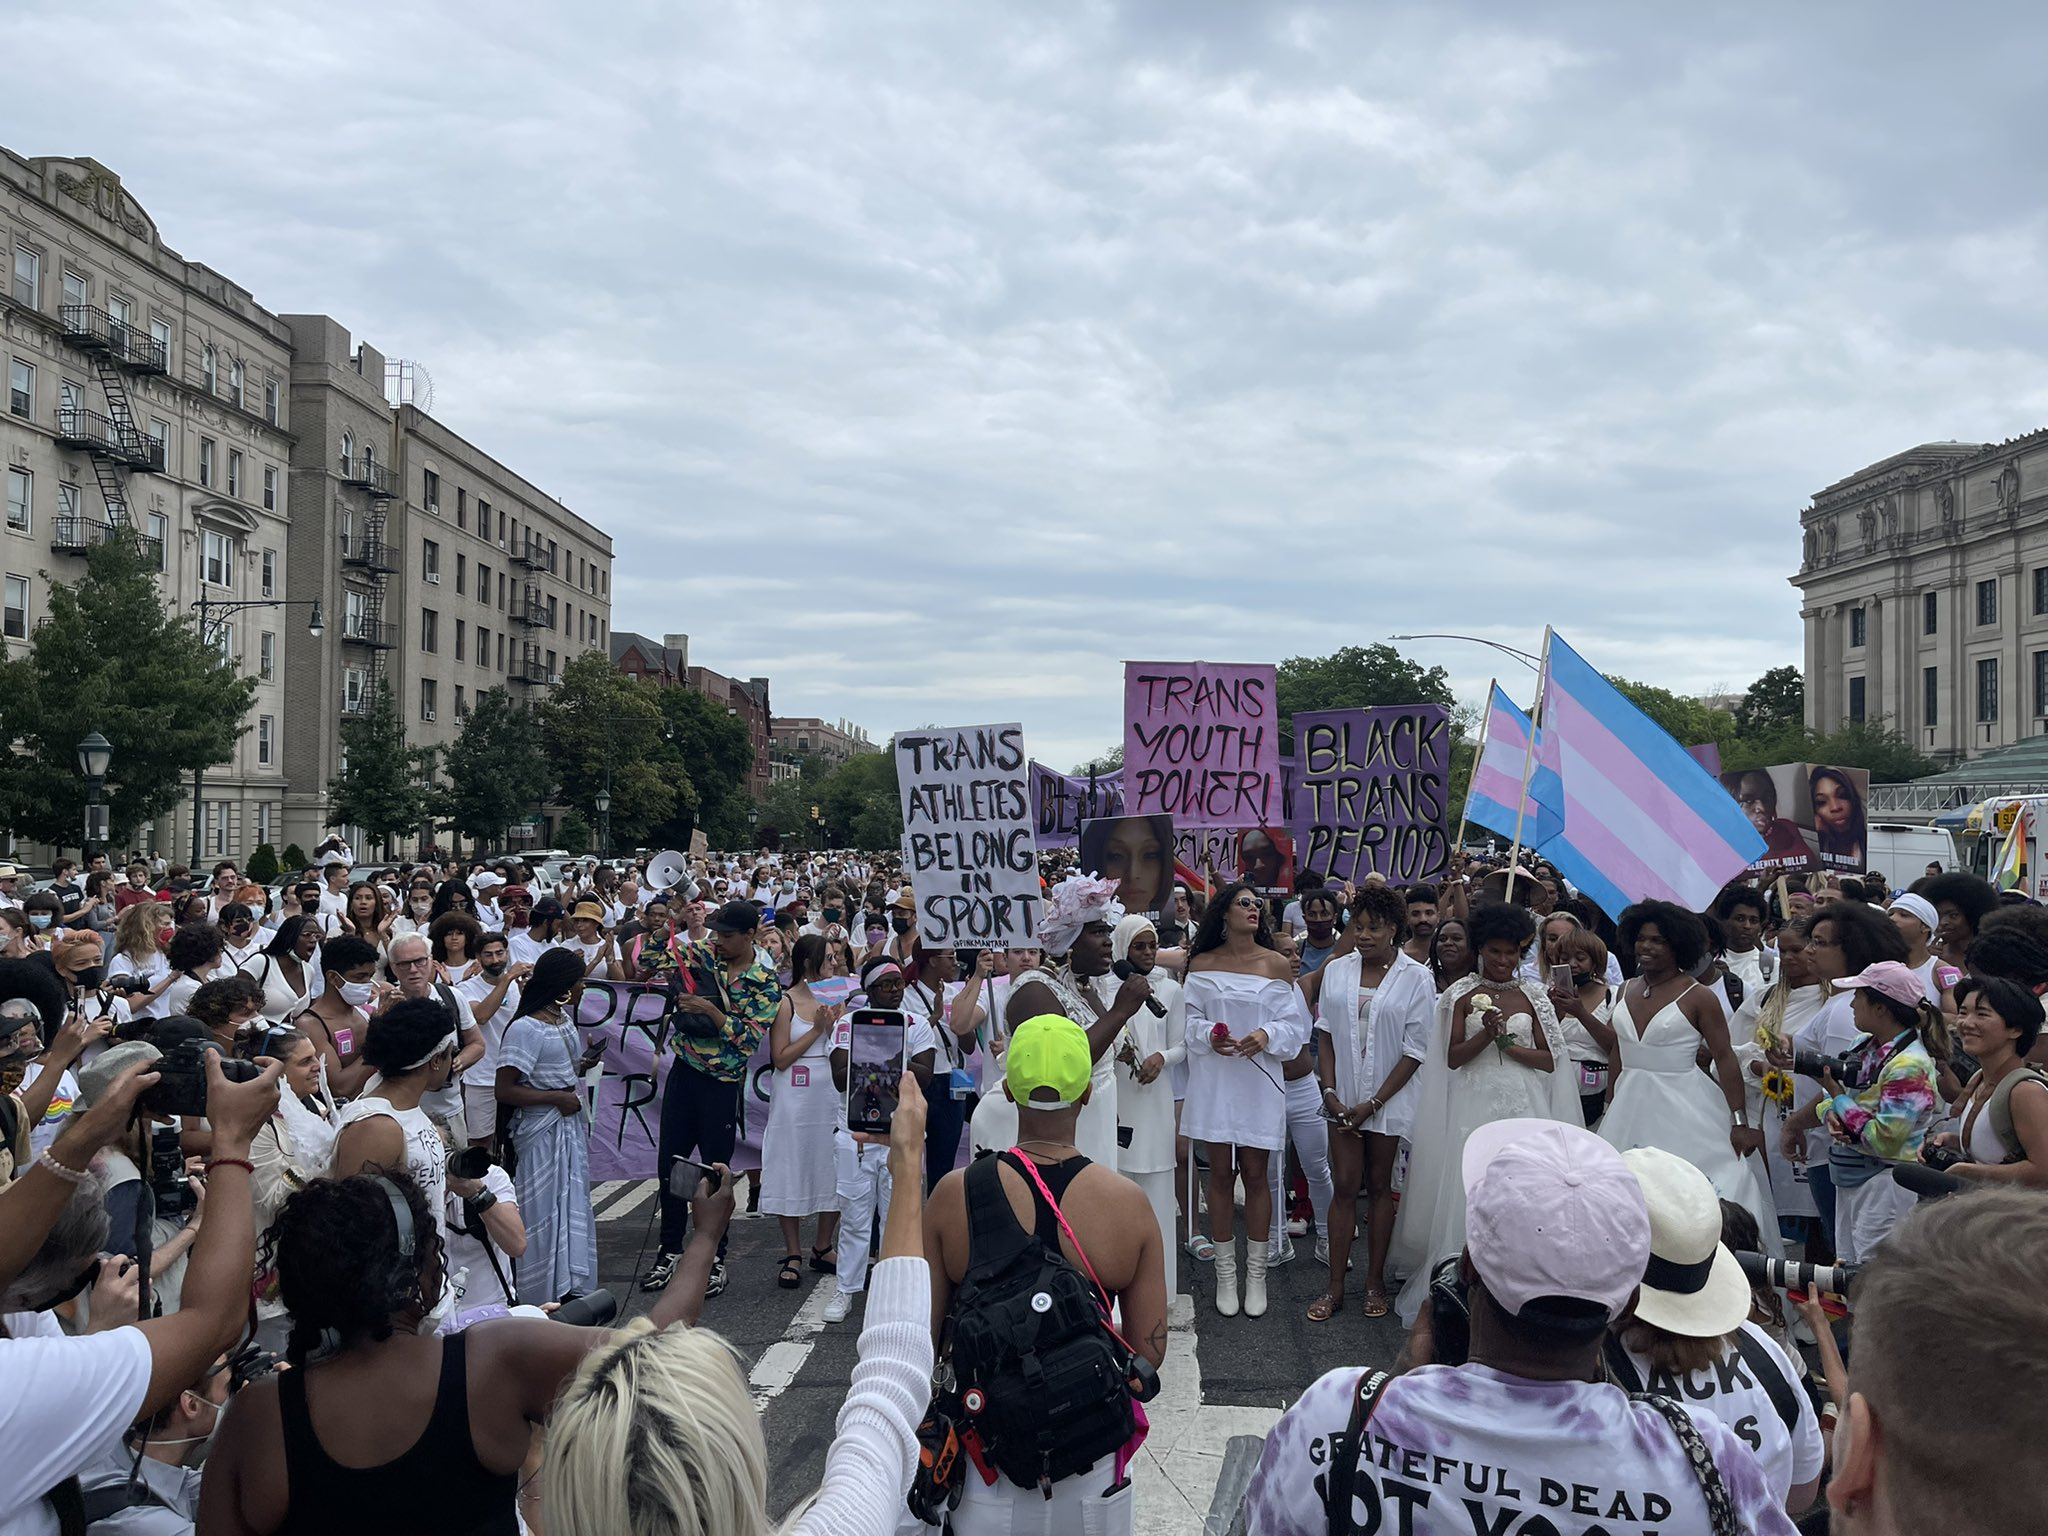 Thousands of trans rights protesters send powerful message to lawmakers and allies